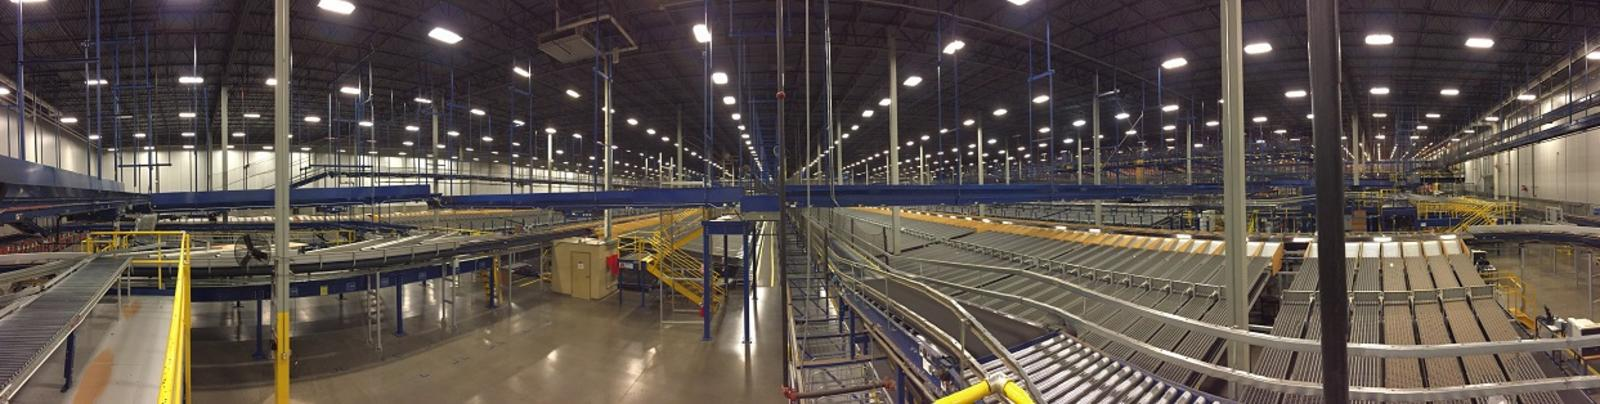 Nike NALC - Memphis Distribution Center 1